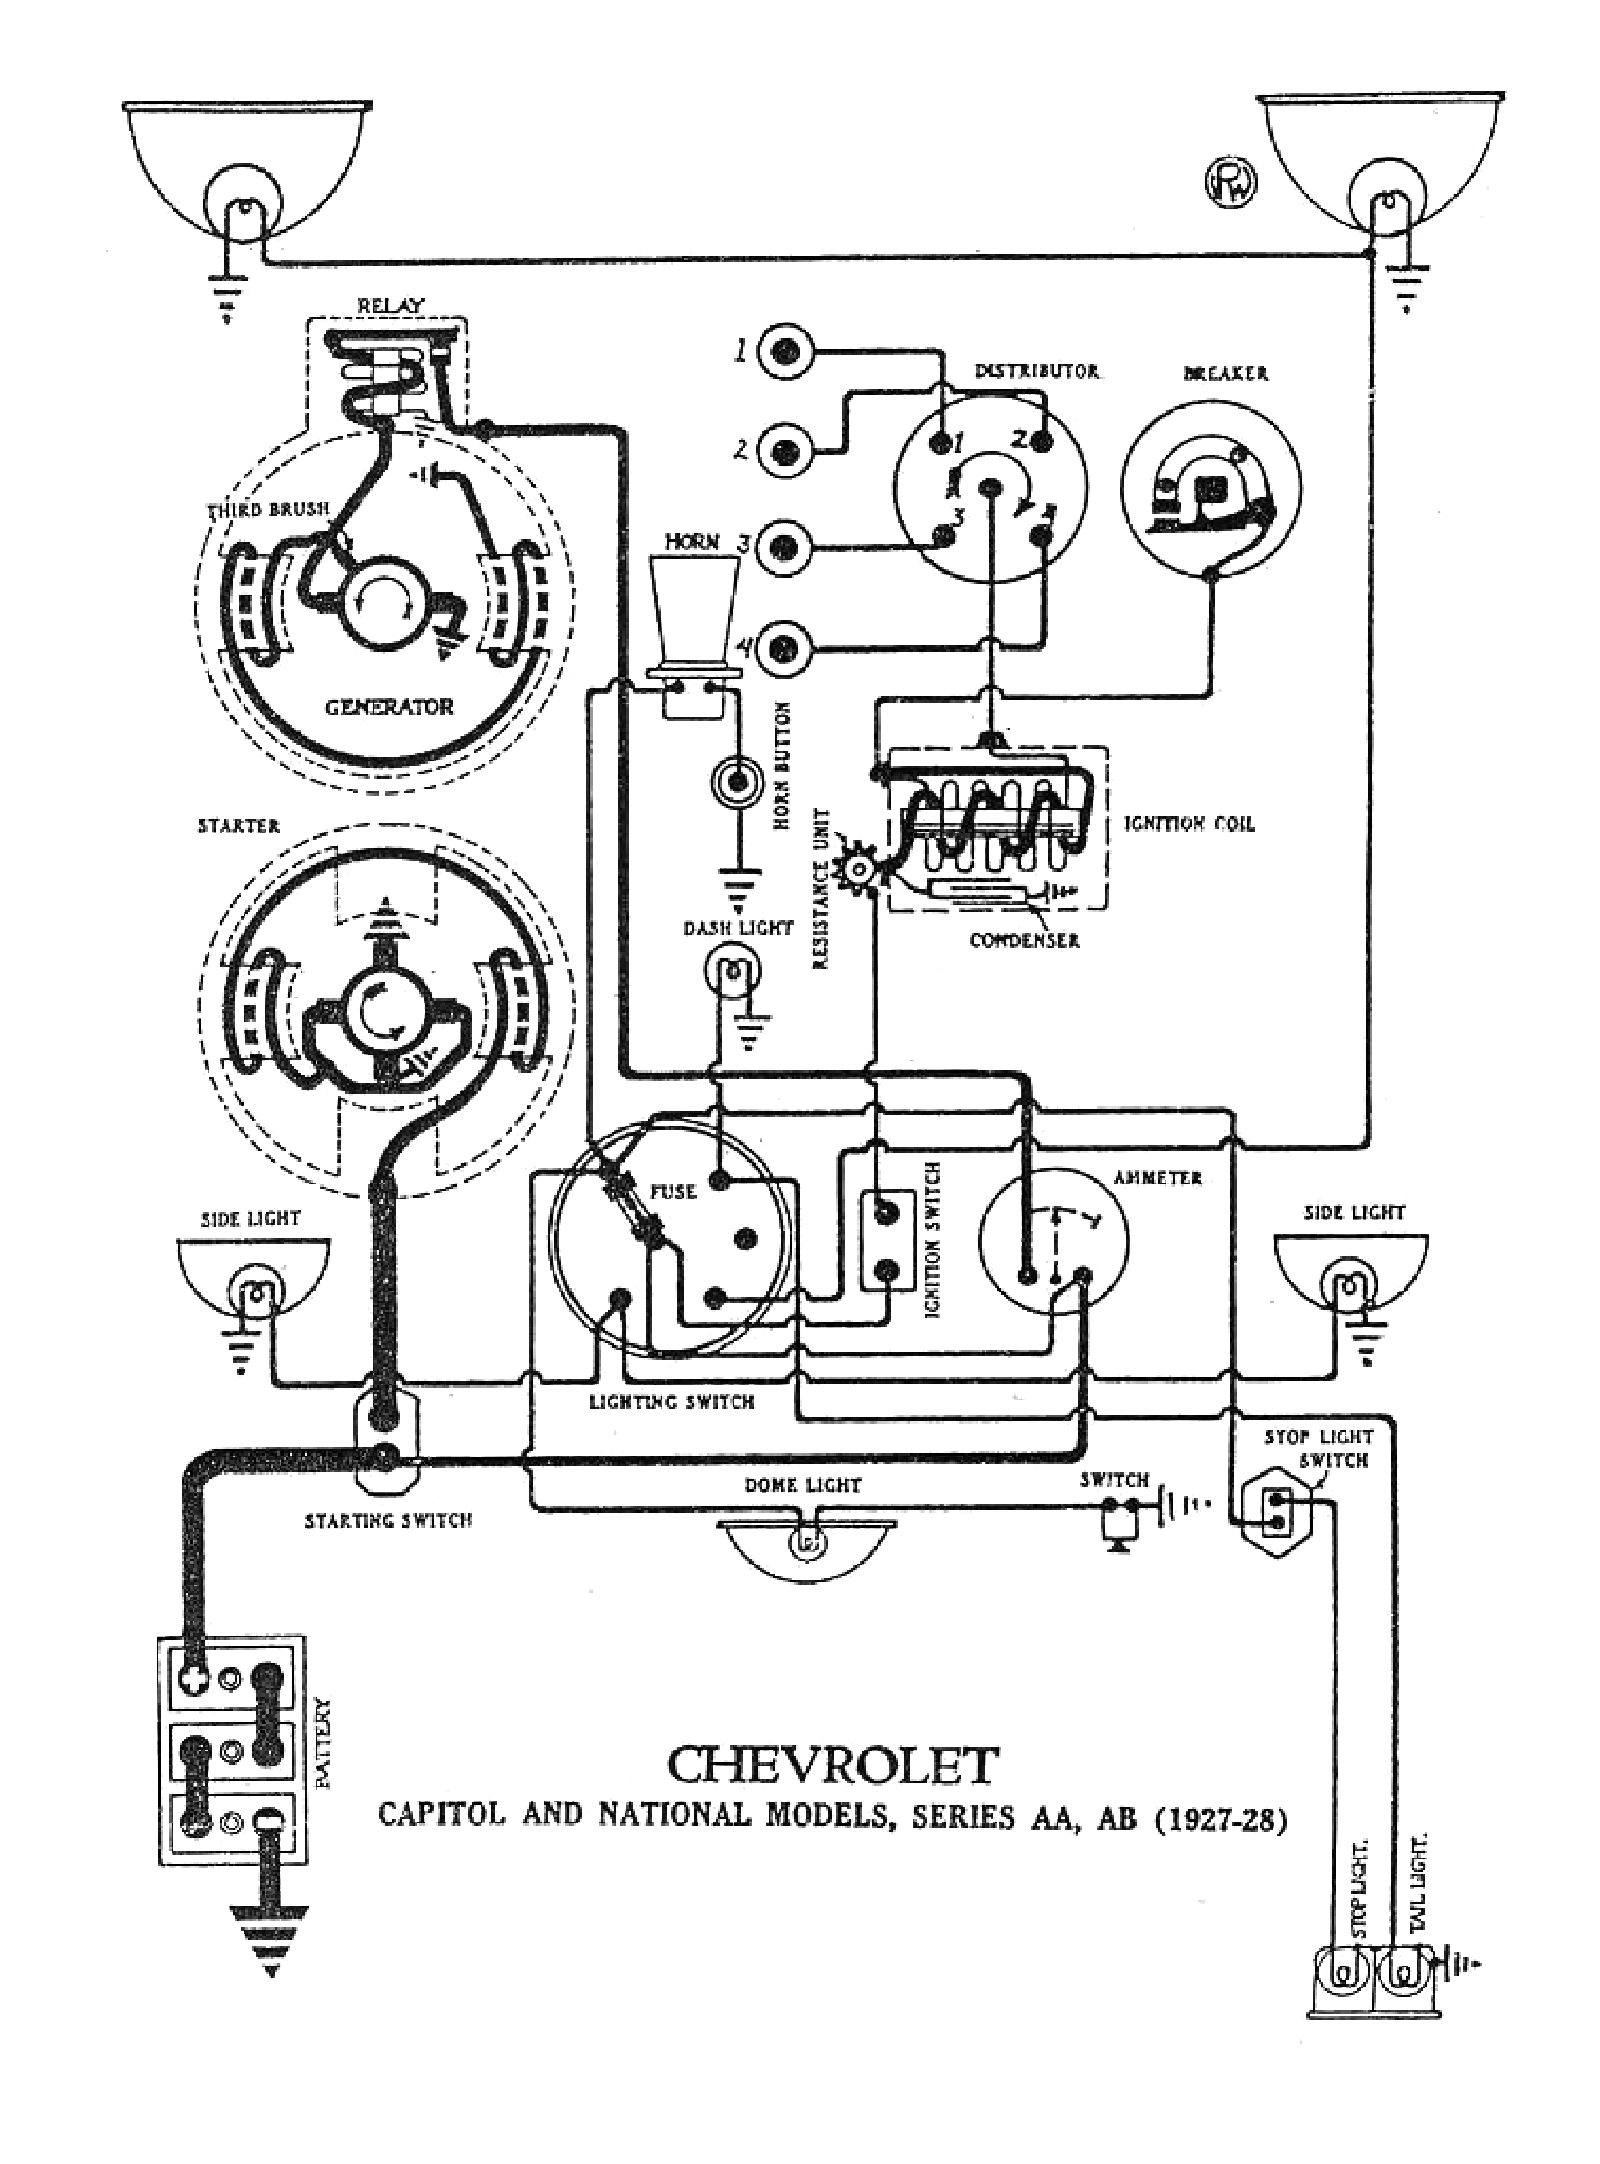 Chevy Pickup Wiring Diagram For